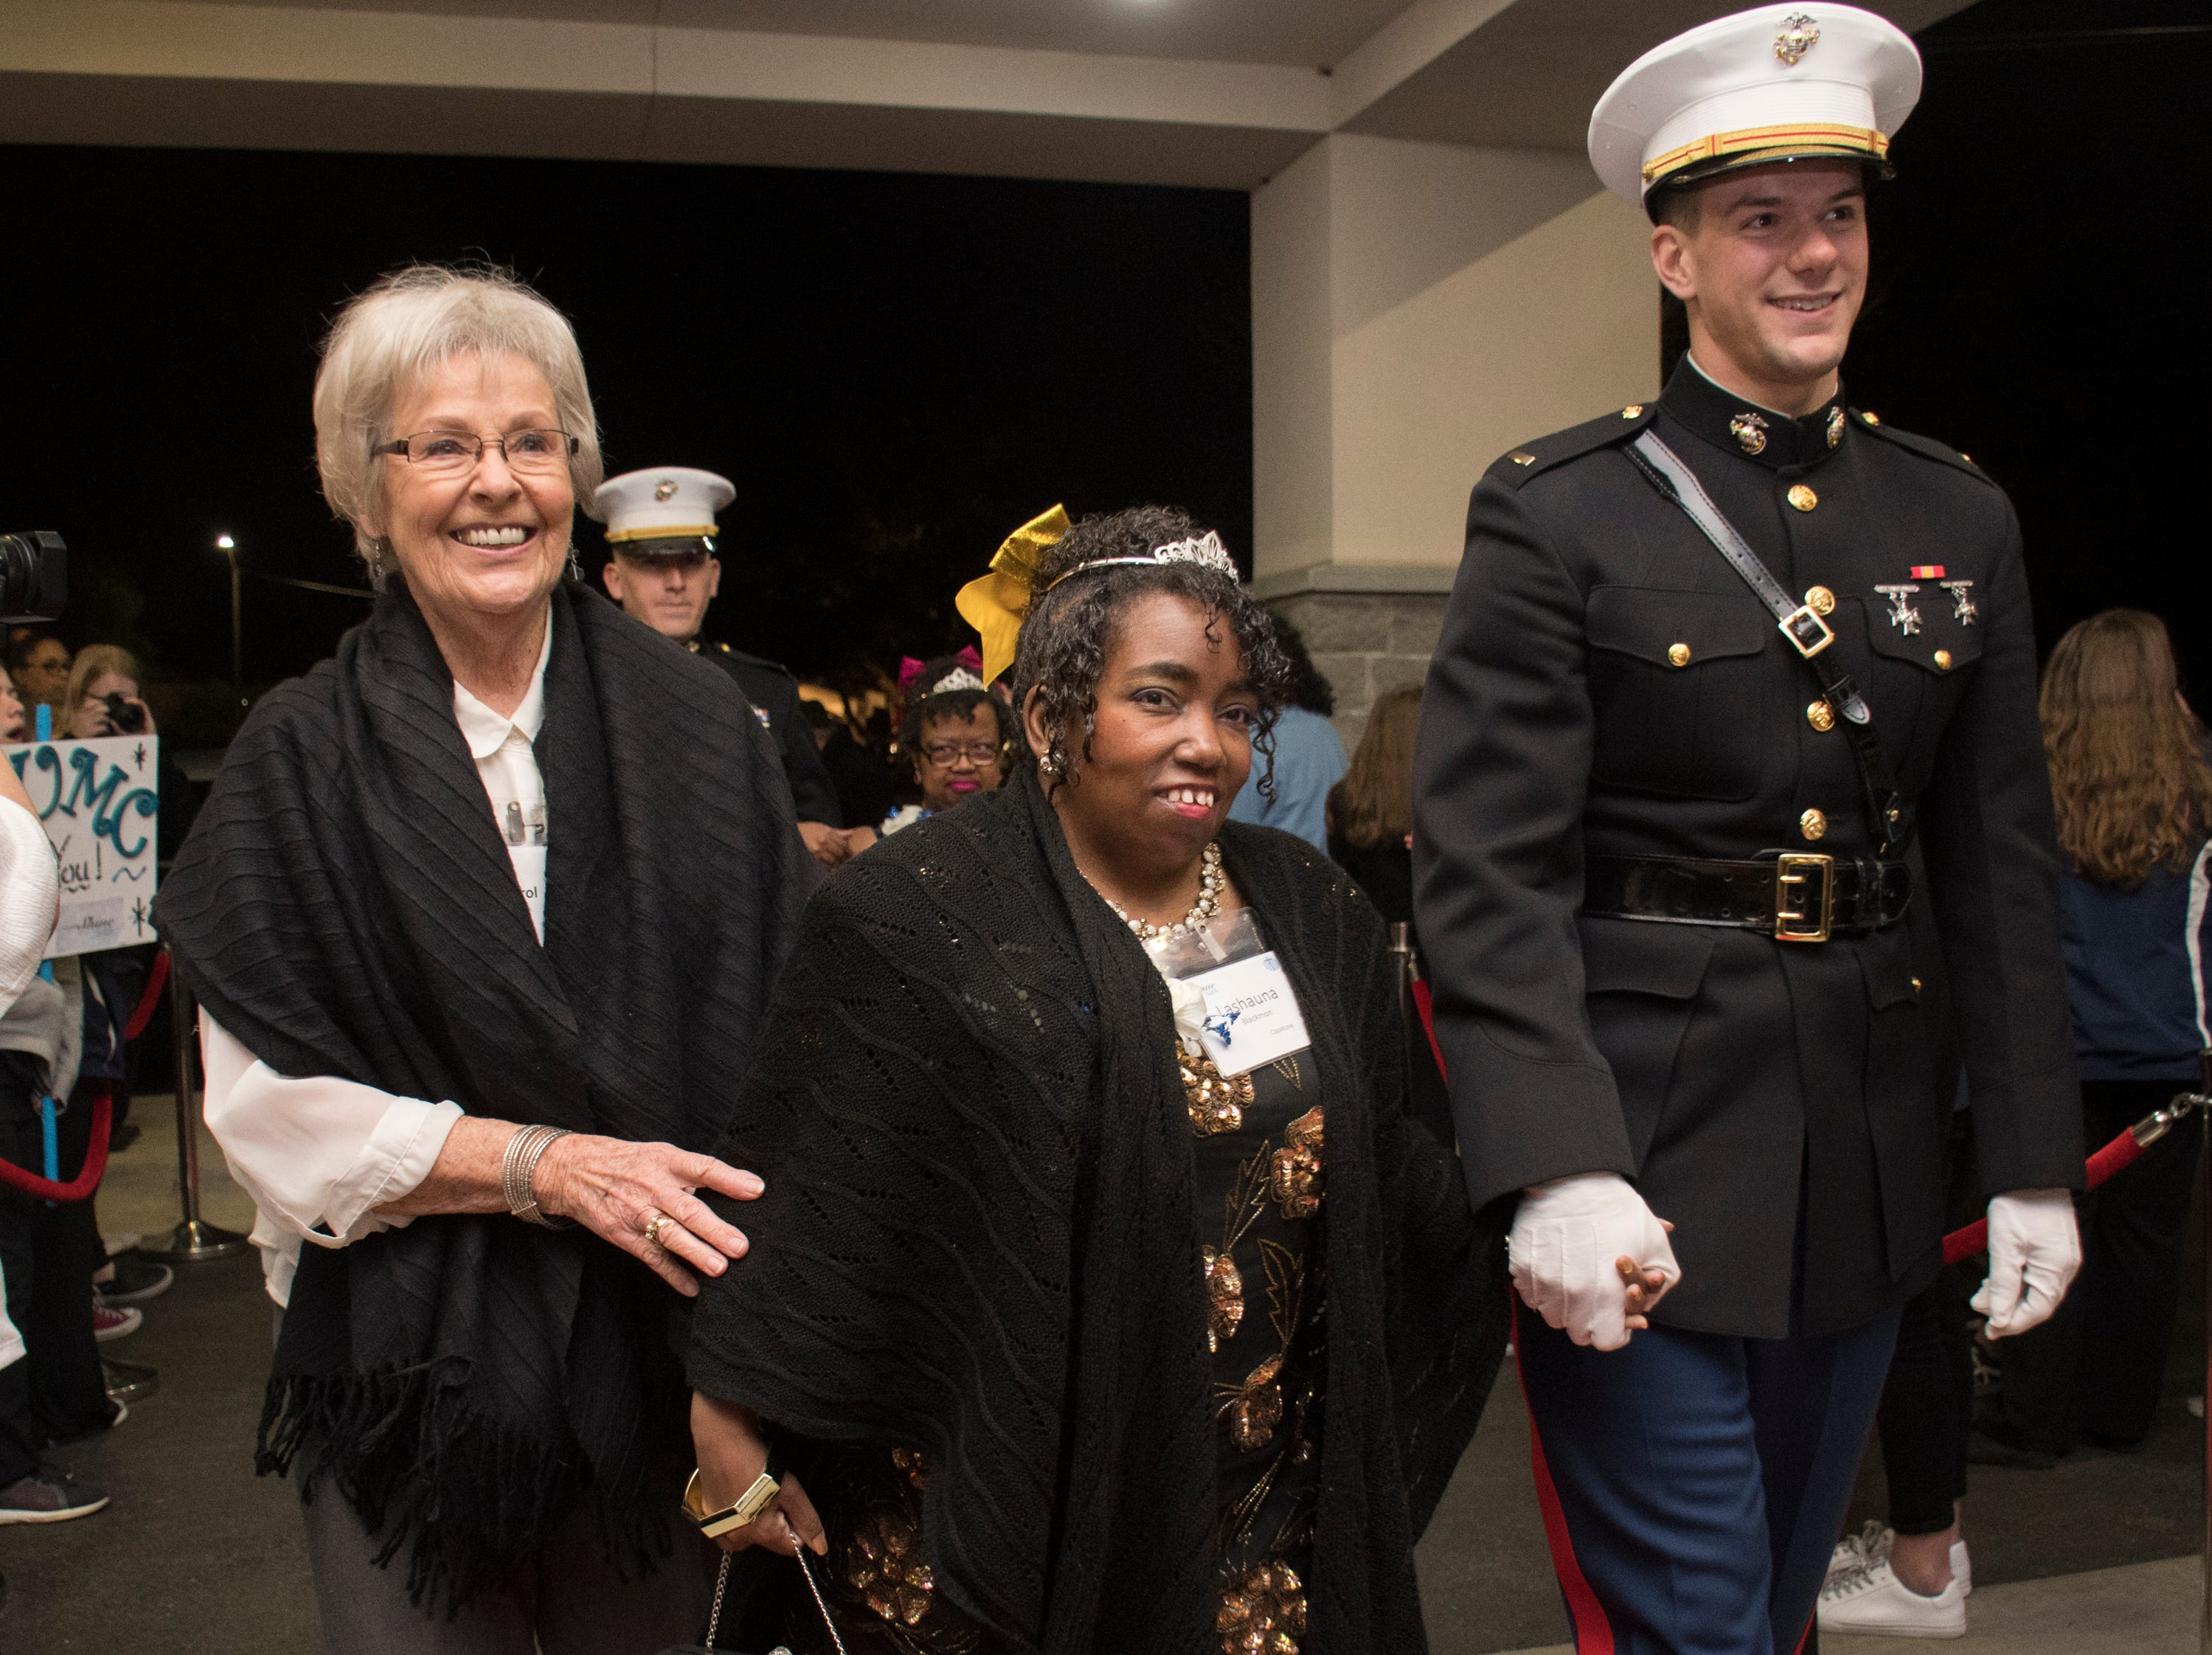 Lashauna Backmon is escorted into the Night to Shine prom for people with special needs sponsored by the Tim Tebow Foundation at Perdido Bay United Methodist Church in Pensacola on Friday, February 8, 2019.